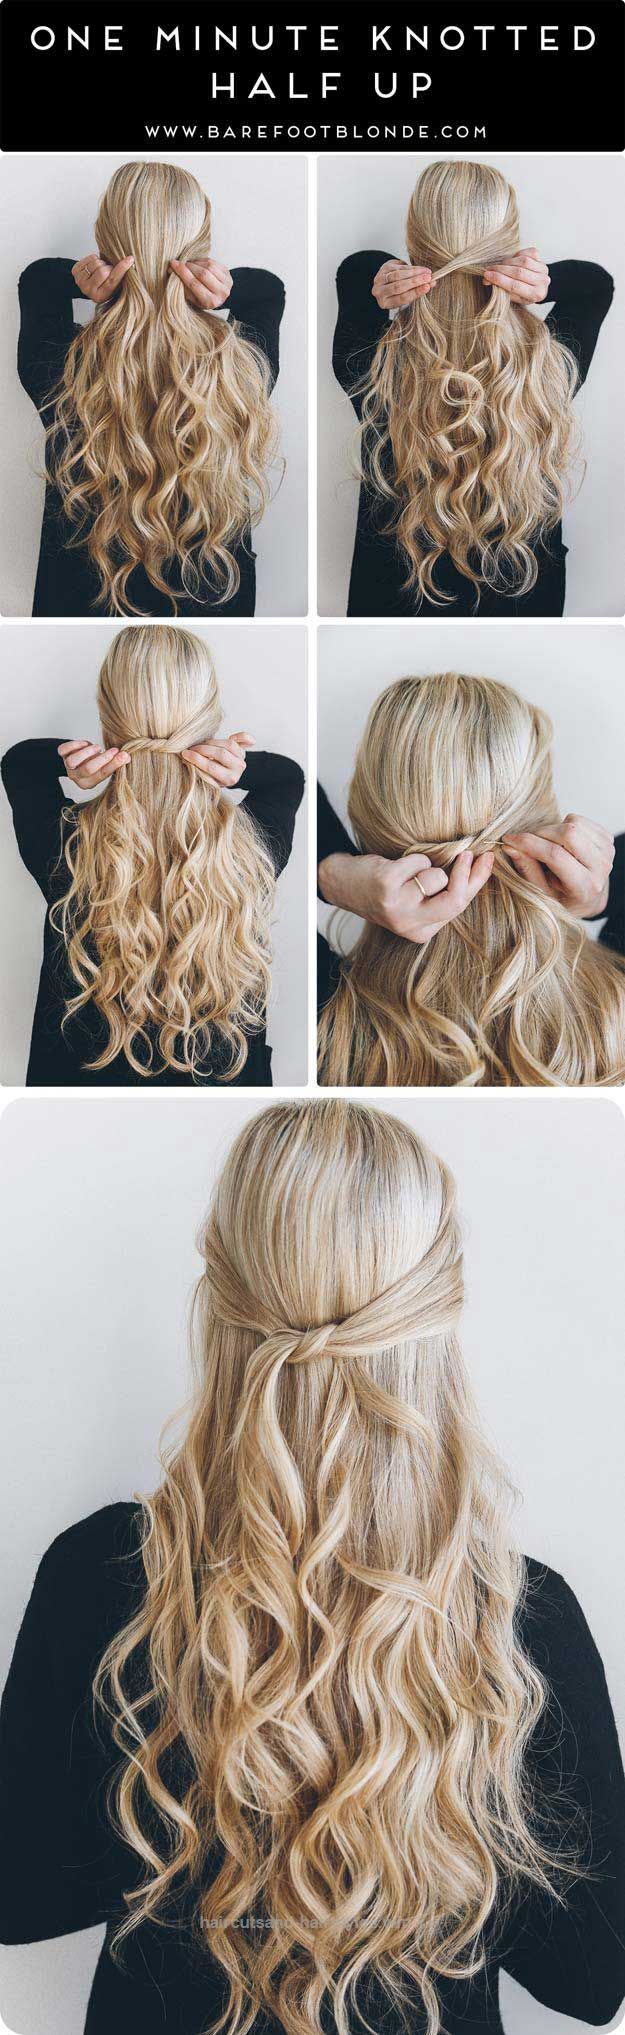 Amazing Half Up Half Down Hairstyles For Long Hair One Minute Knotted Half Up Haircuts And Hairstyles Down Hairstyles For Long Hair Medium Hair Styles Hair Styles